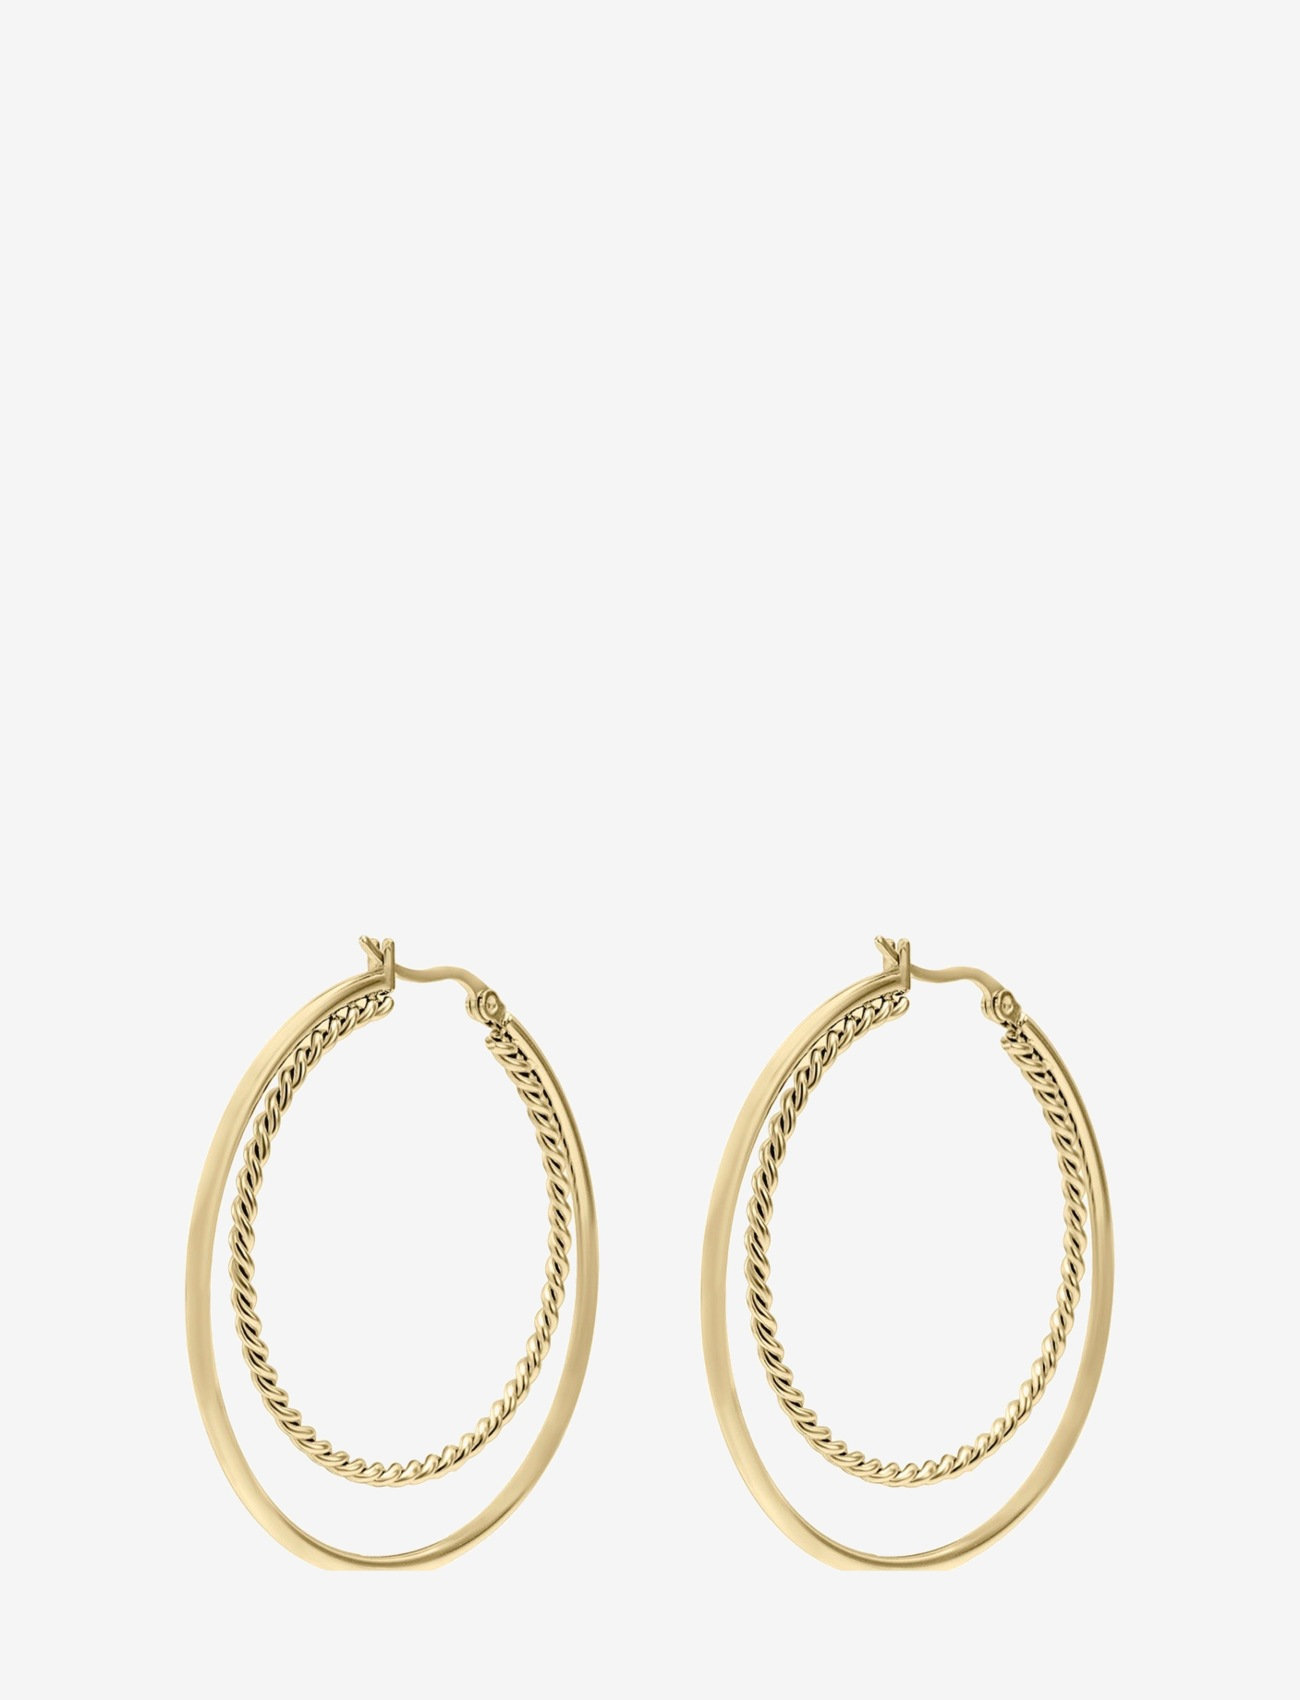 Bud to rose - Double Hoop Earring Gold - creoler - gold - 0